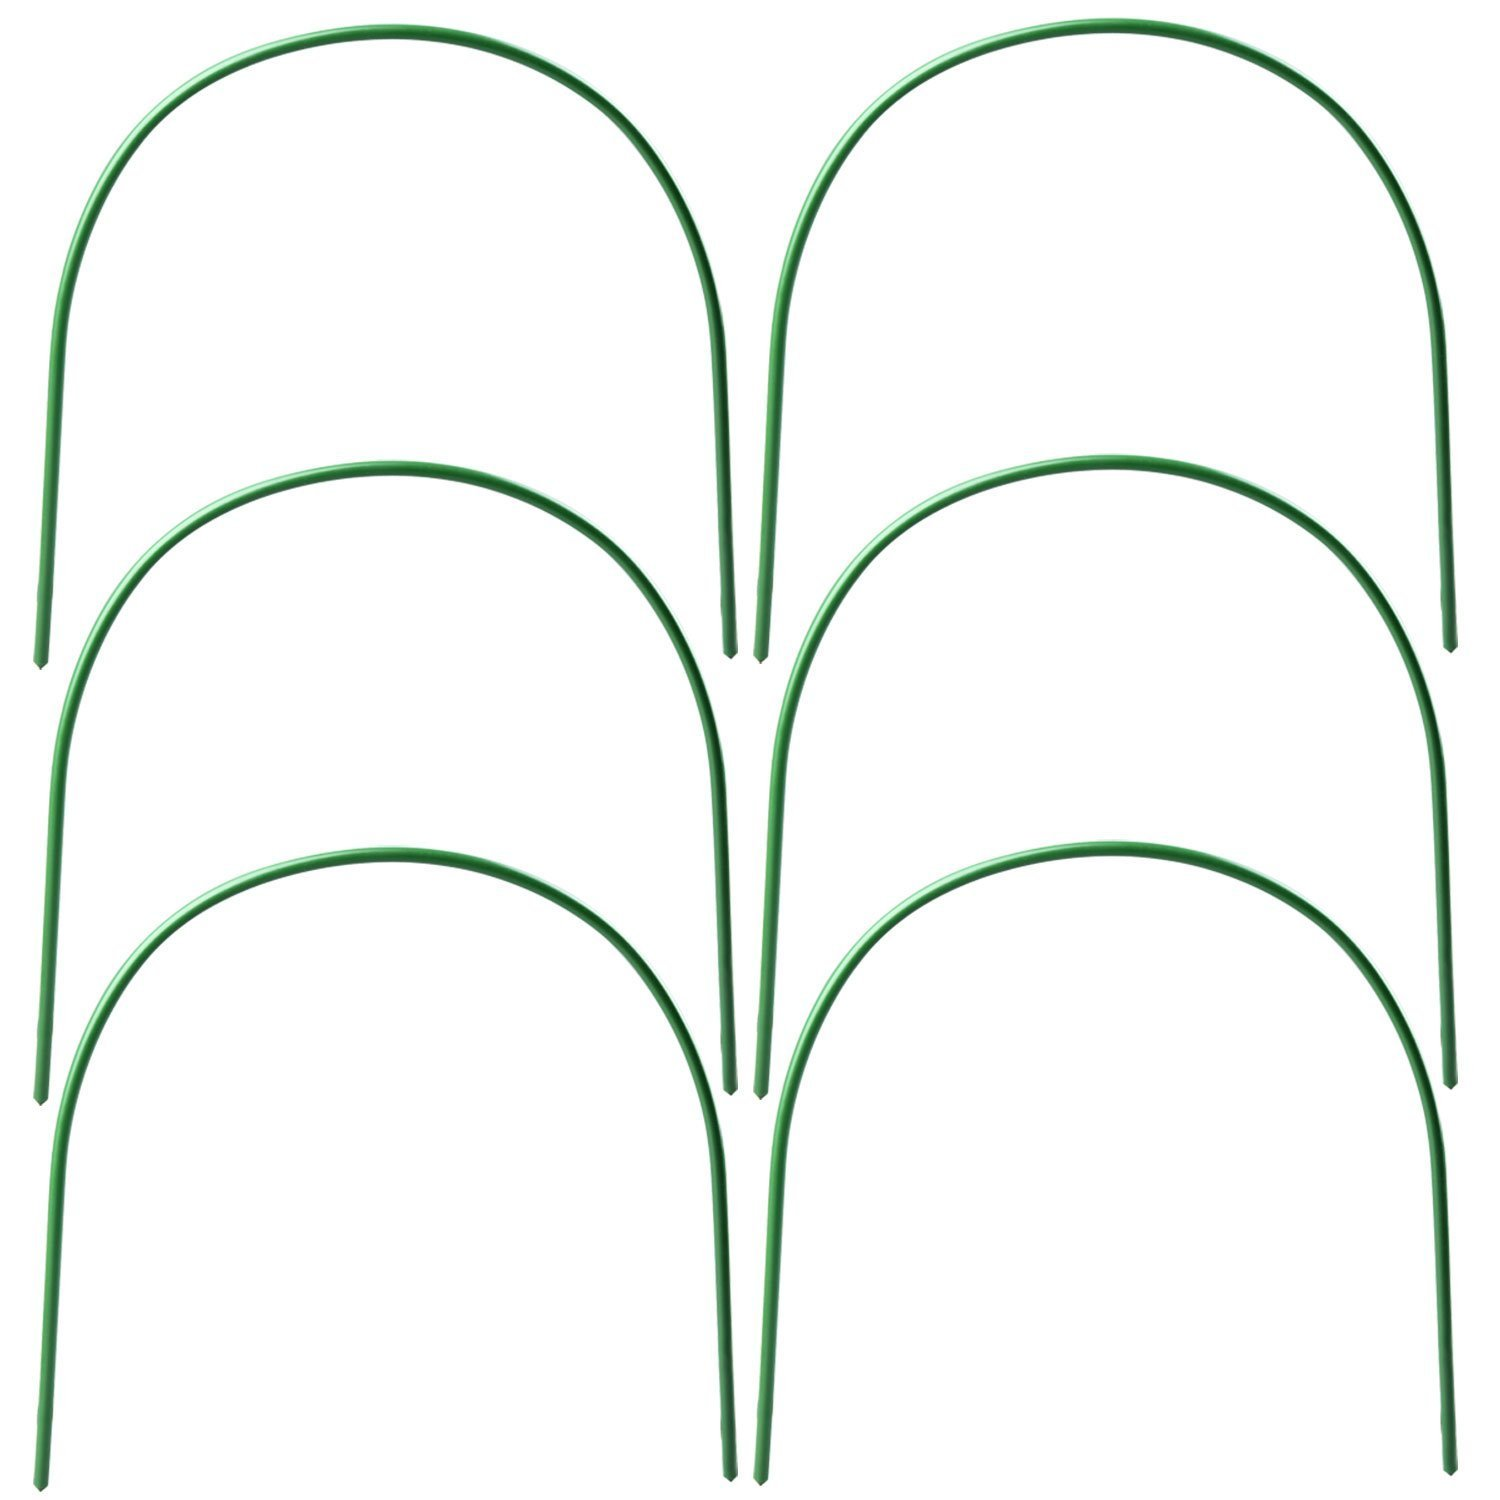 D.F.L 10 Pcs Hoop Greenhouse Frame,Garden Hoops 4ft Long Plant Hoops Rust-Free Grow Tunnel,Garden Tunnel Hoop Support Hoops for Garden Stakes Fabric